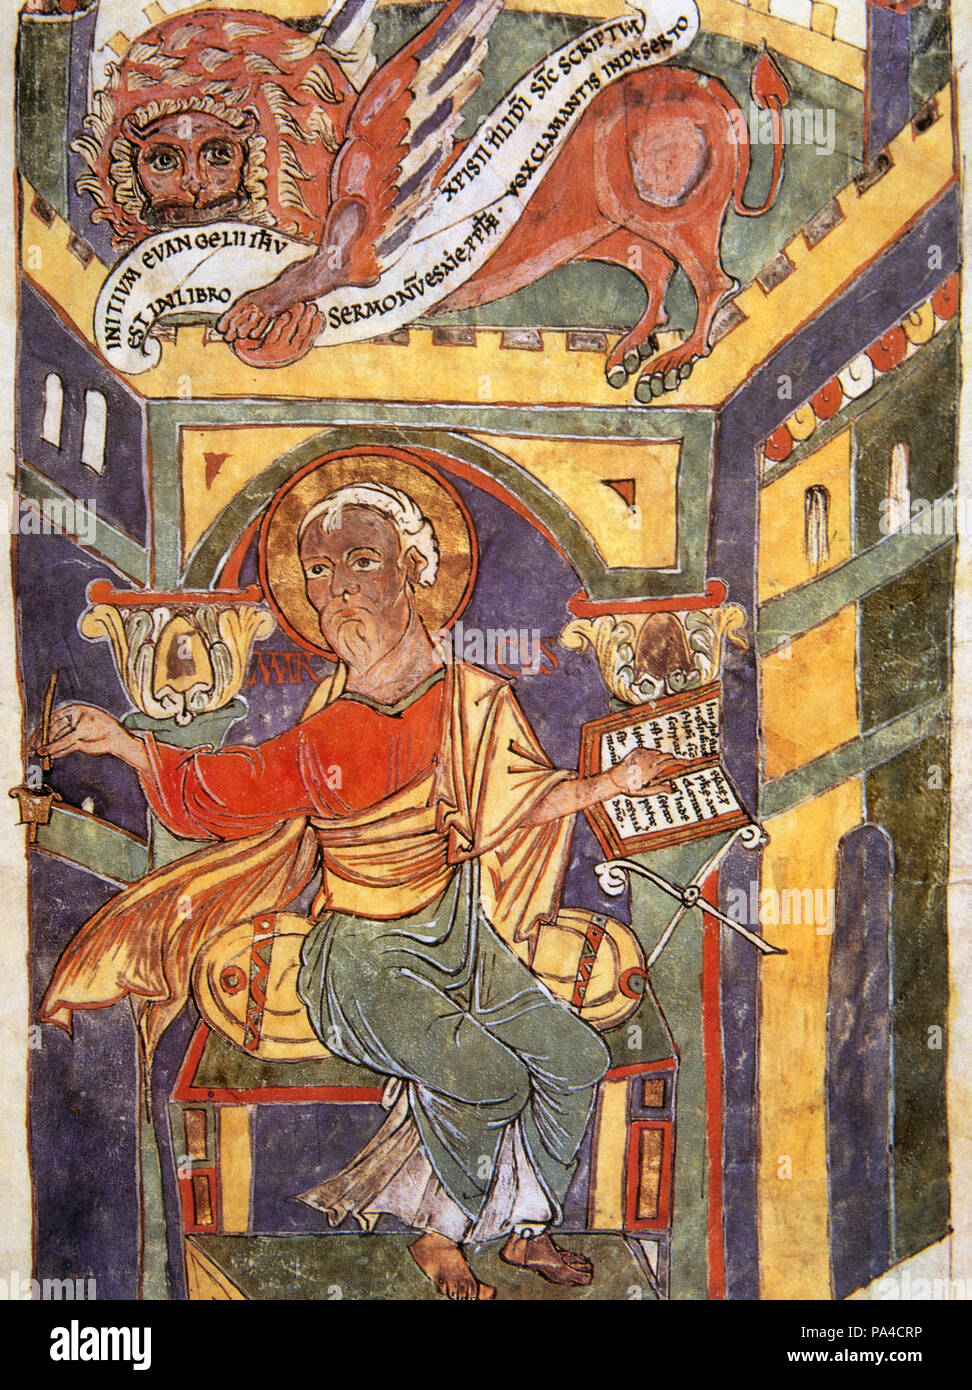 Saint Mark the Evangelist. Miniature, 11th century. 'The Book of the Gospel', St. Mark is depicted writing the second gospel, accompanied by the symbol of the tetramorph: the winged lion. Vatican Apostolic Library. Vatican City. - Stock Image